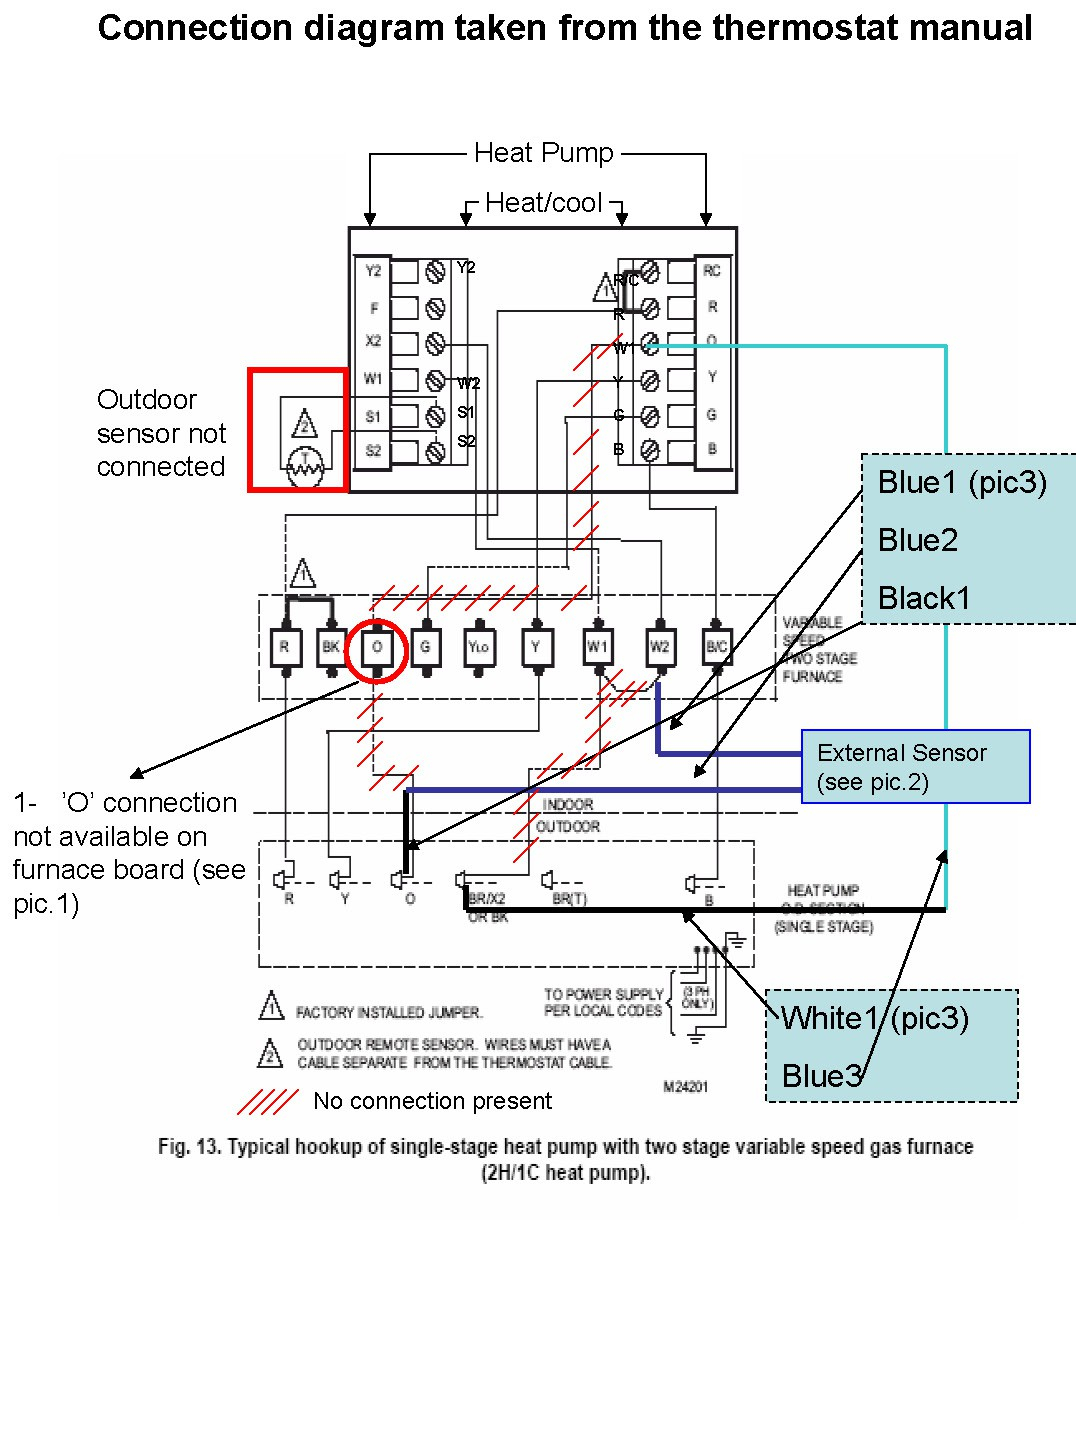 hight resolution of single stage thermostat wiring diagram collection trane thermostat wiring diagram lovely home heater thermostat wiring download wiring diagram